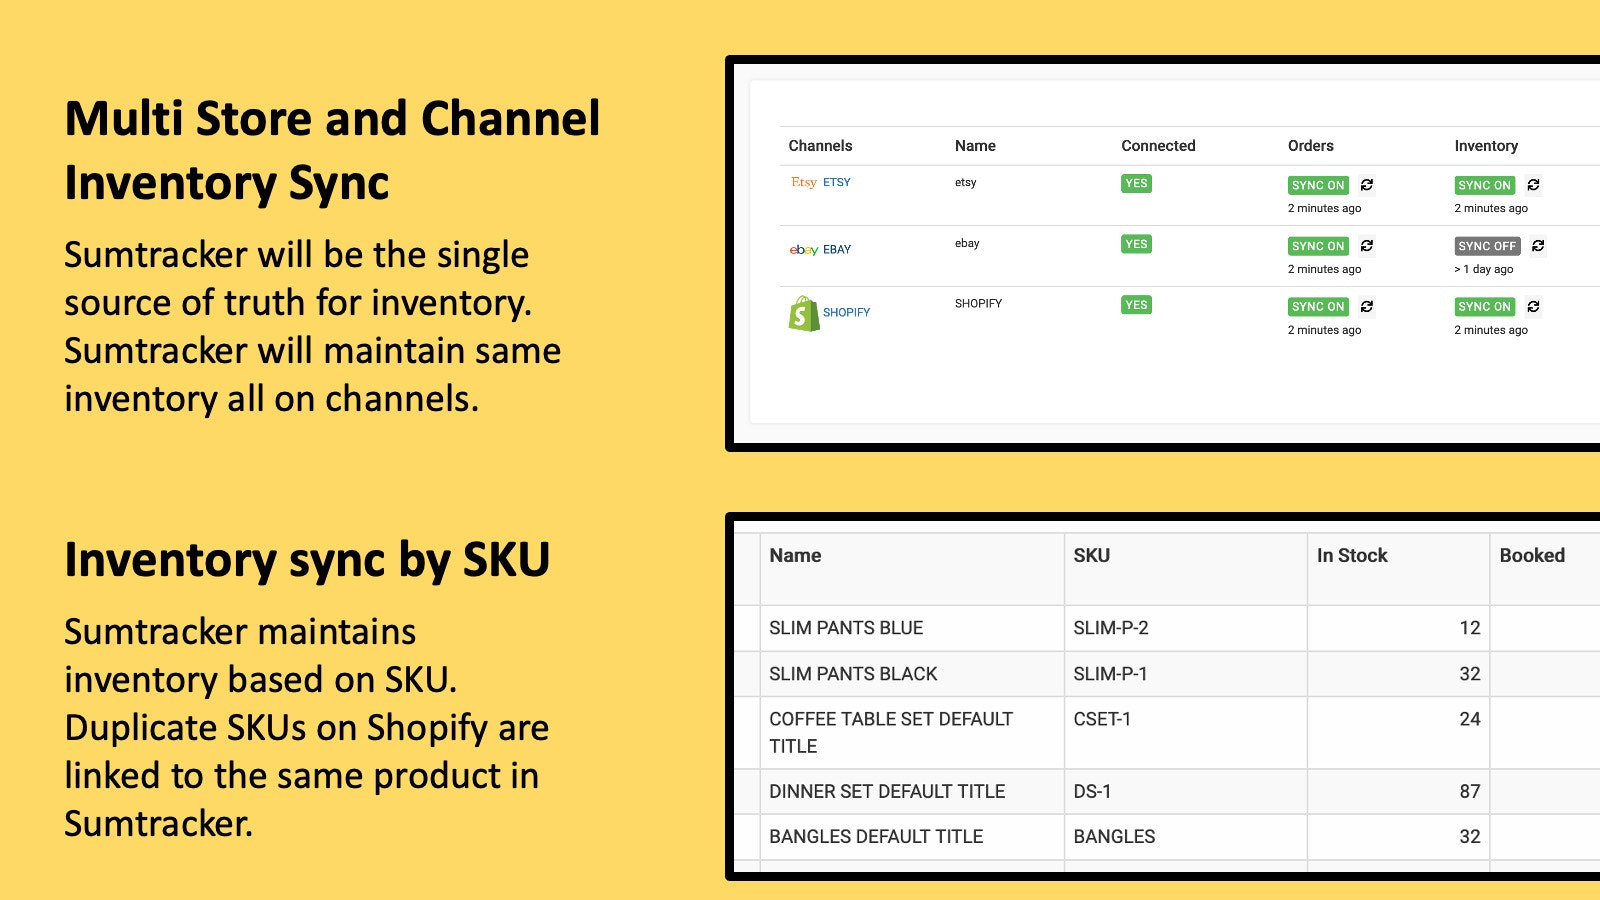 Multi store and channel inventory sync